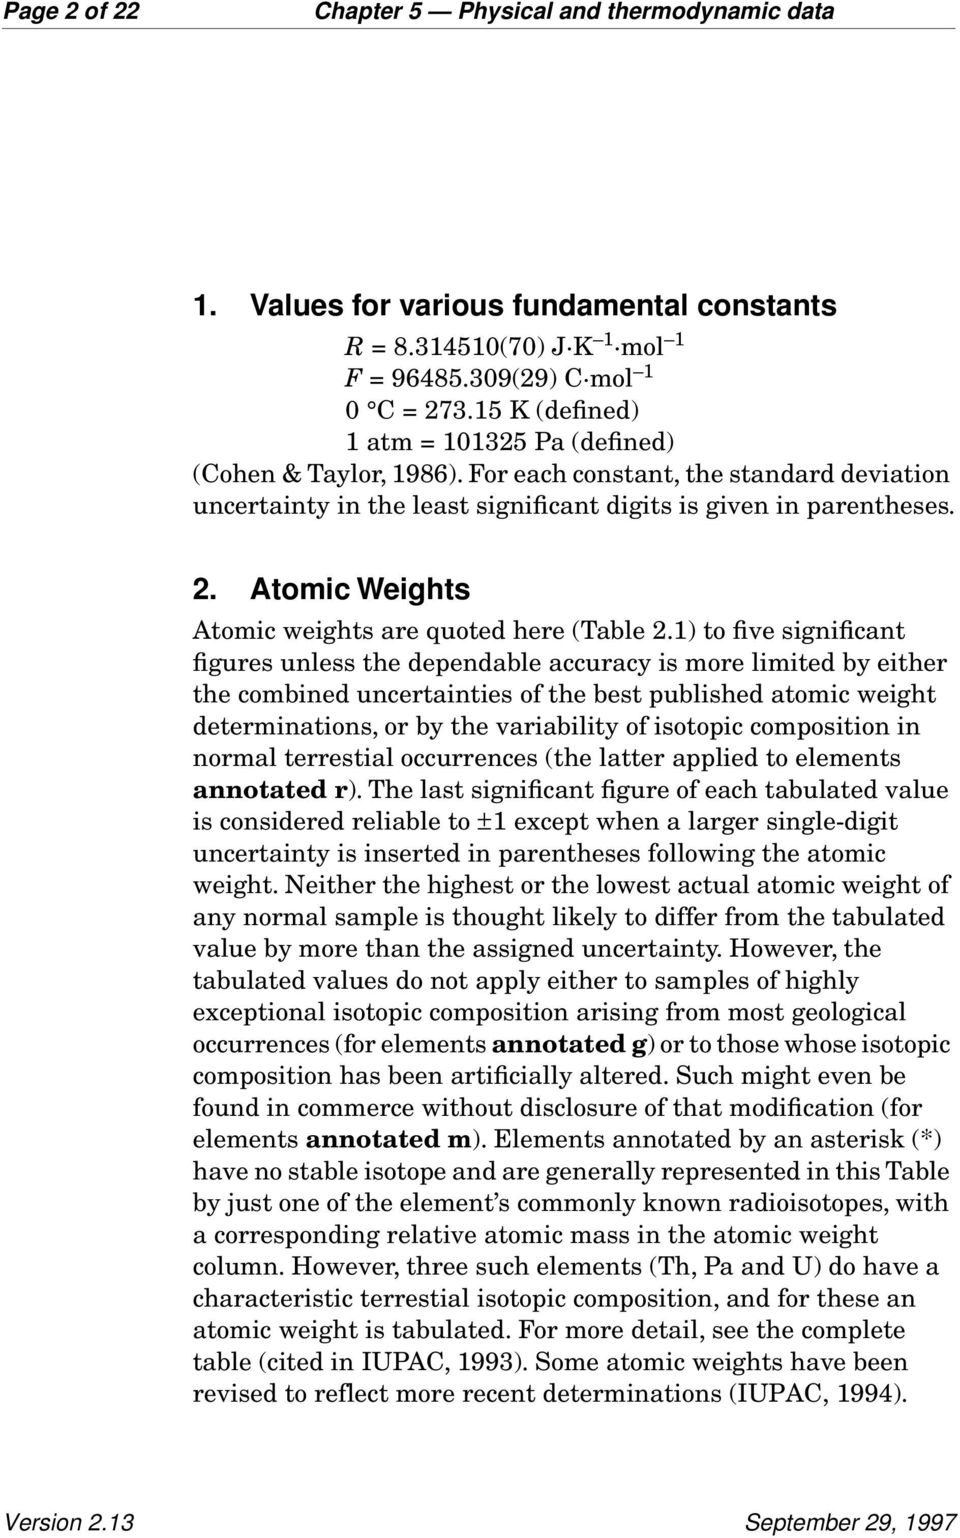 Atomic Weights Atomic weights are quoted here (Table 2.